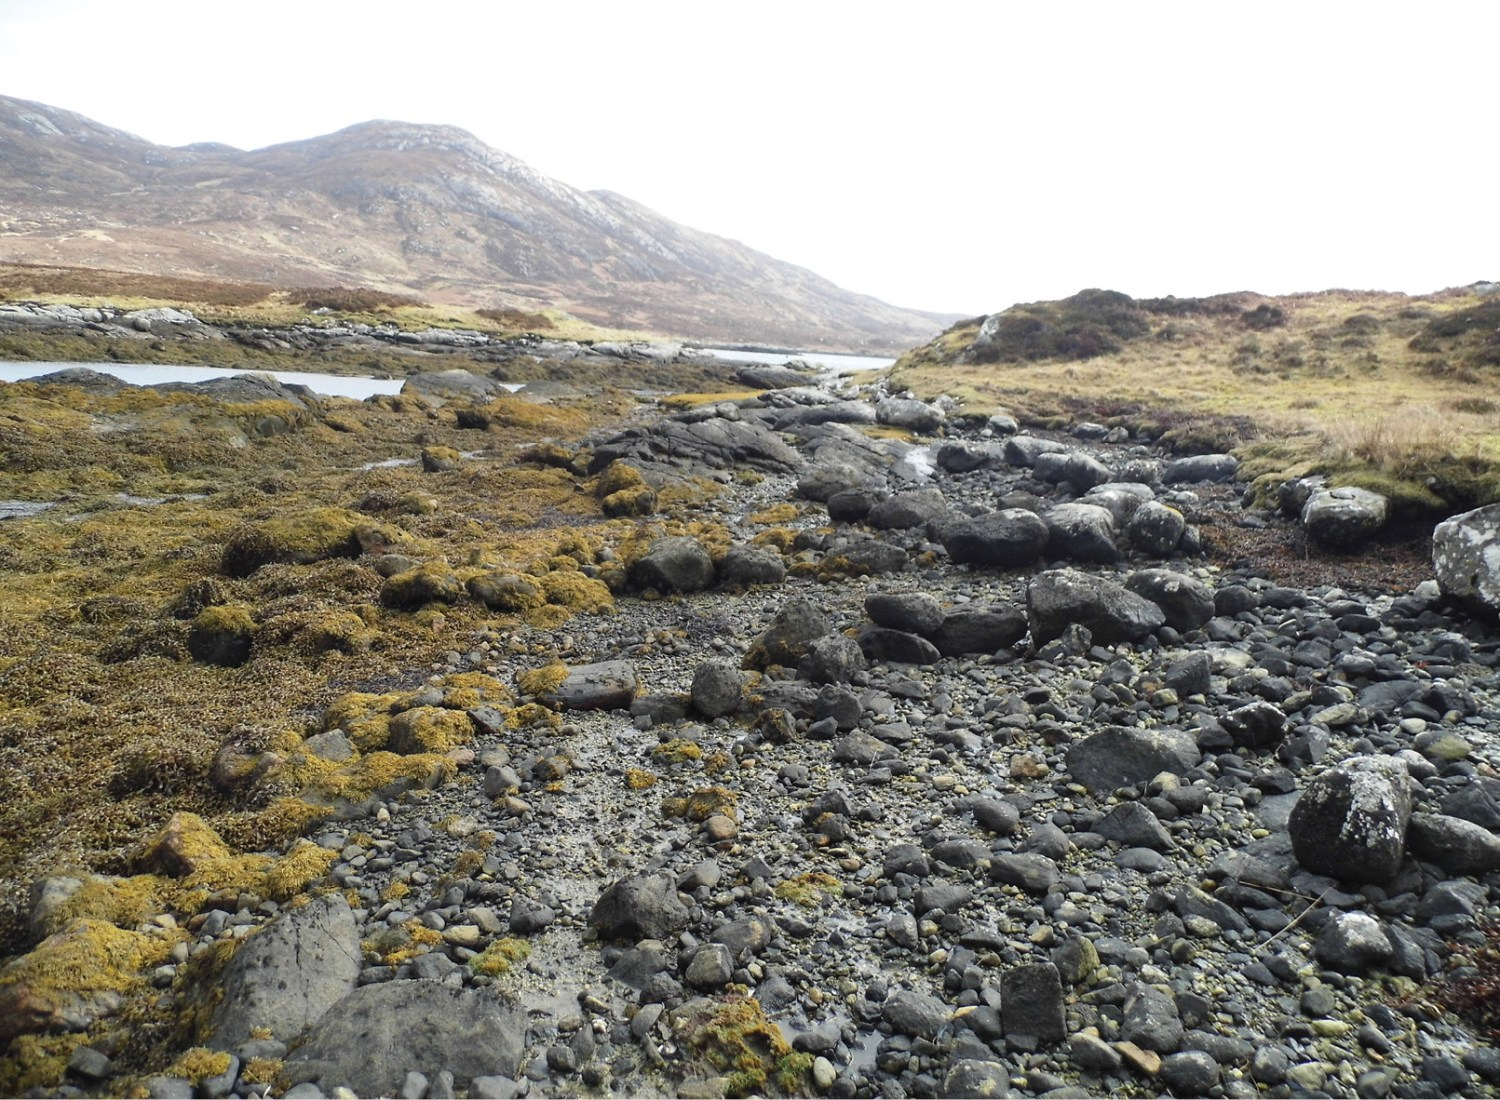 LEFT An informal landing spot on the shore, probably useful for loading and launching small boats as part of kelping activity. The shores of the loch have many similar places. BELOW The linear arrangement of stones has been identified as the house and enclosure occupied by 'Widow Currie' from at least 1810. Currie is recorded as having paid a substantial rent of £11 in 1813, and having sold as much as two tons of kelp in the same year. She and her family were one of the relatively well-to-do tenants trying their luck as kelp producers. The small surrounding enclosure would have allowed some subsistence farming.